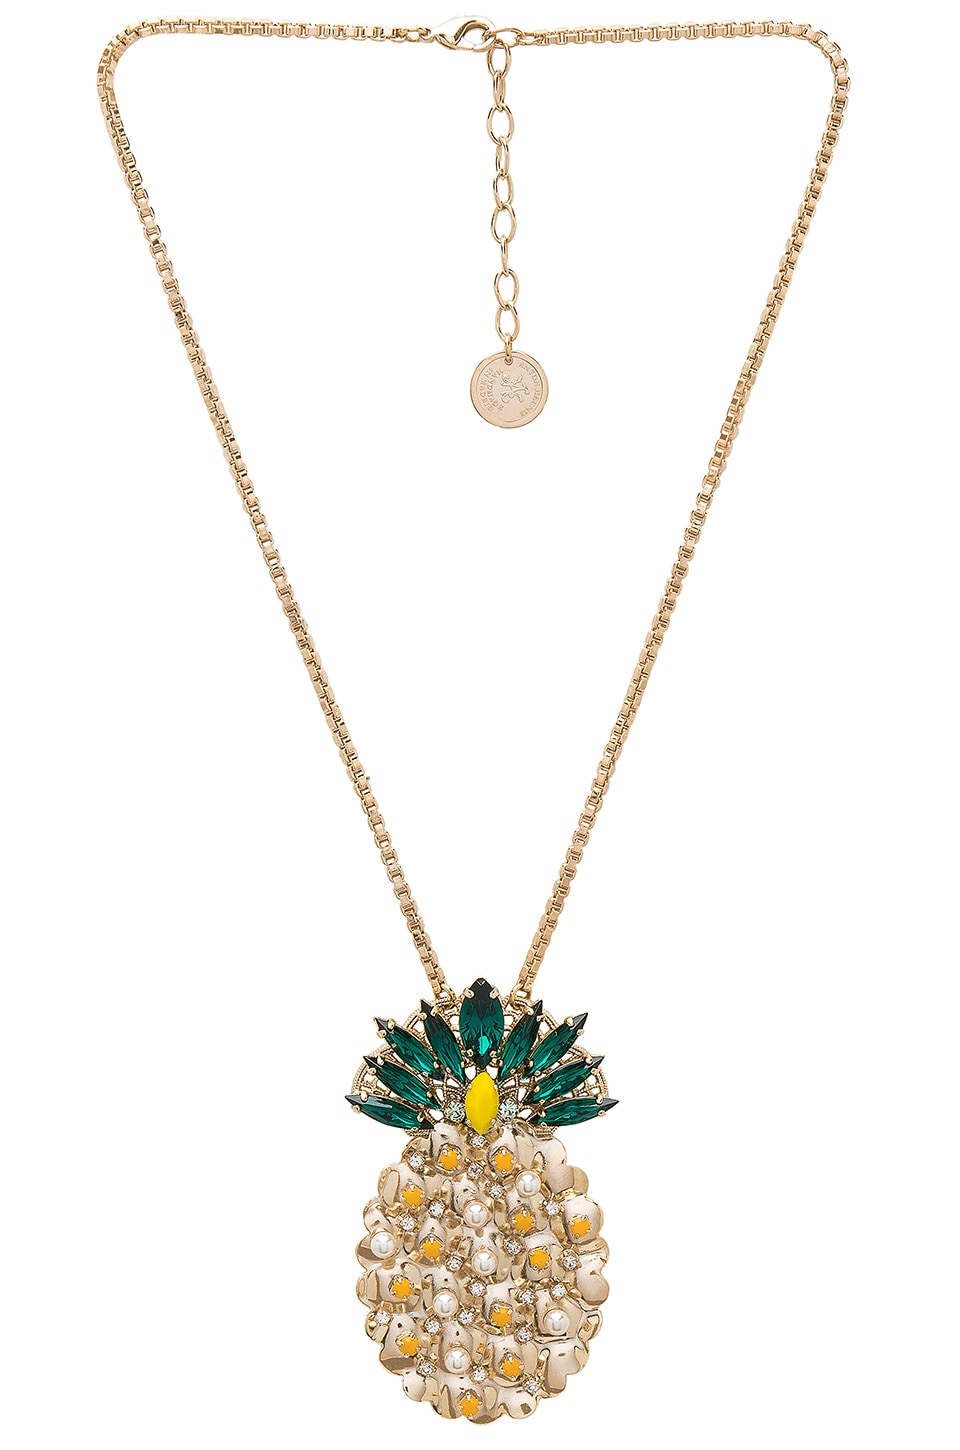 Pineapple Pendant Necklace by Anton Heunis